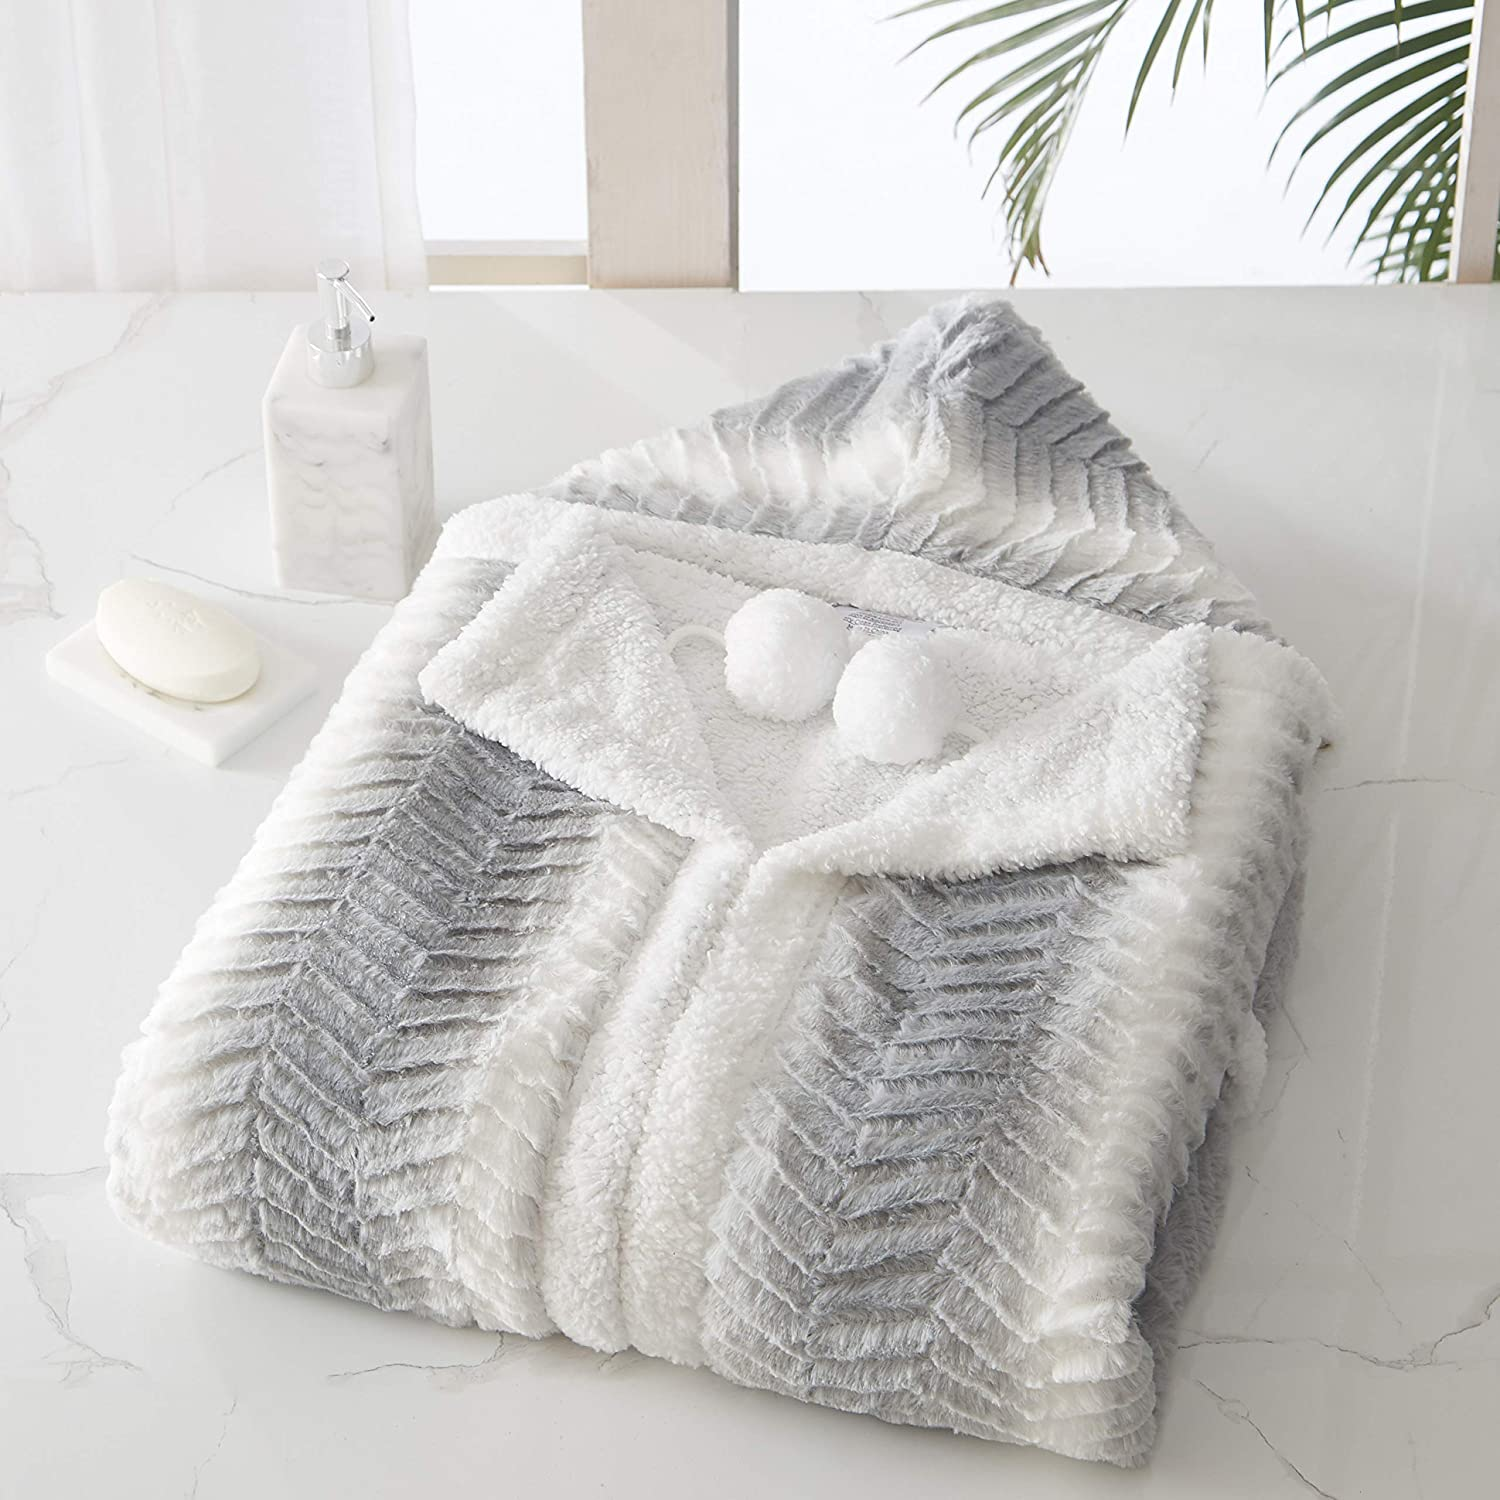 """Chic Home Massimo Snuggle Hoodie Two Tone Wavy Animal Pattern Robe Cozy Super Soft Plush Coral Fleece Sherpa Lined Wearable Blanket 2 Pockets Hood Drawstring Button Closure, Grey-White 51"""" x 71"""""""